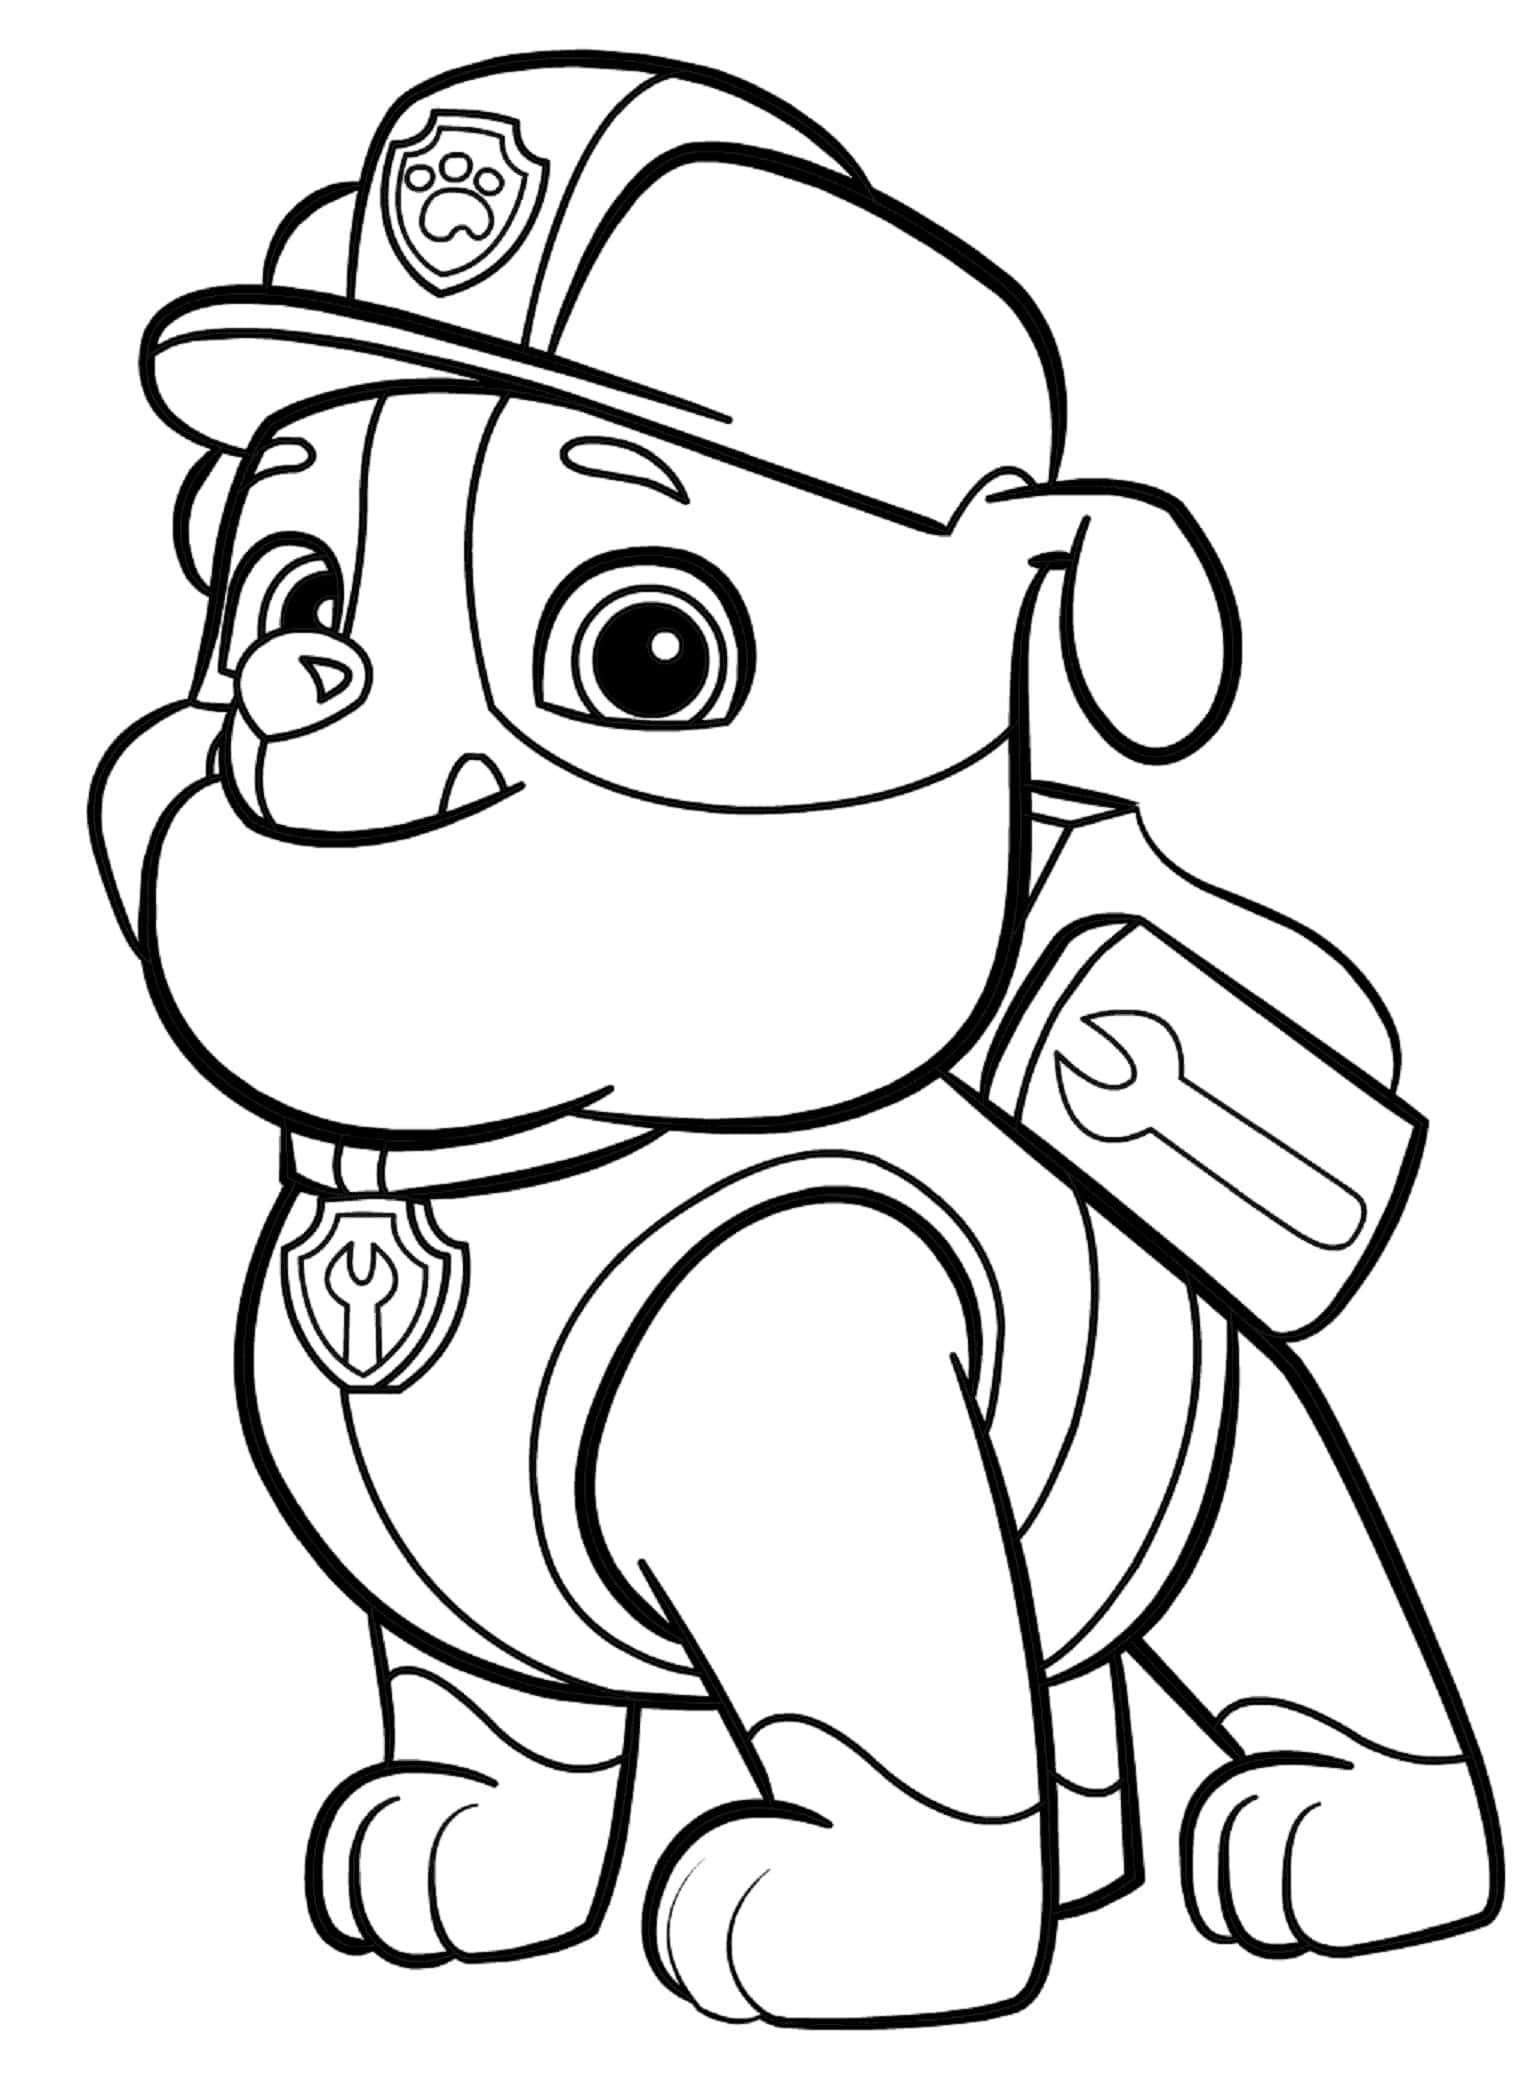 Paw Patrol Coloring Pages. 87 Pictures. Print for Free